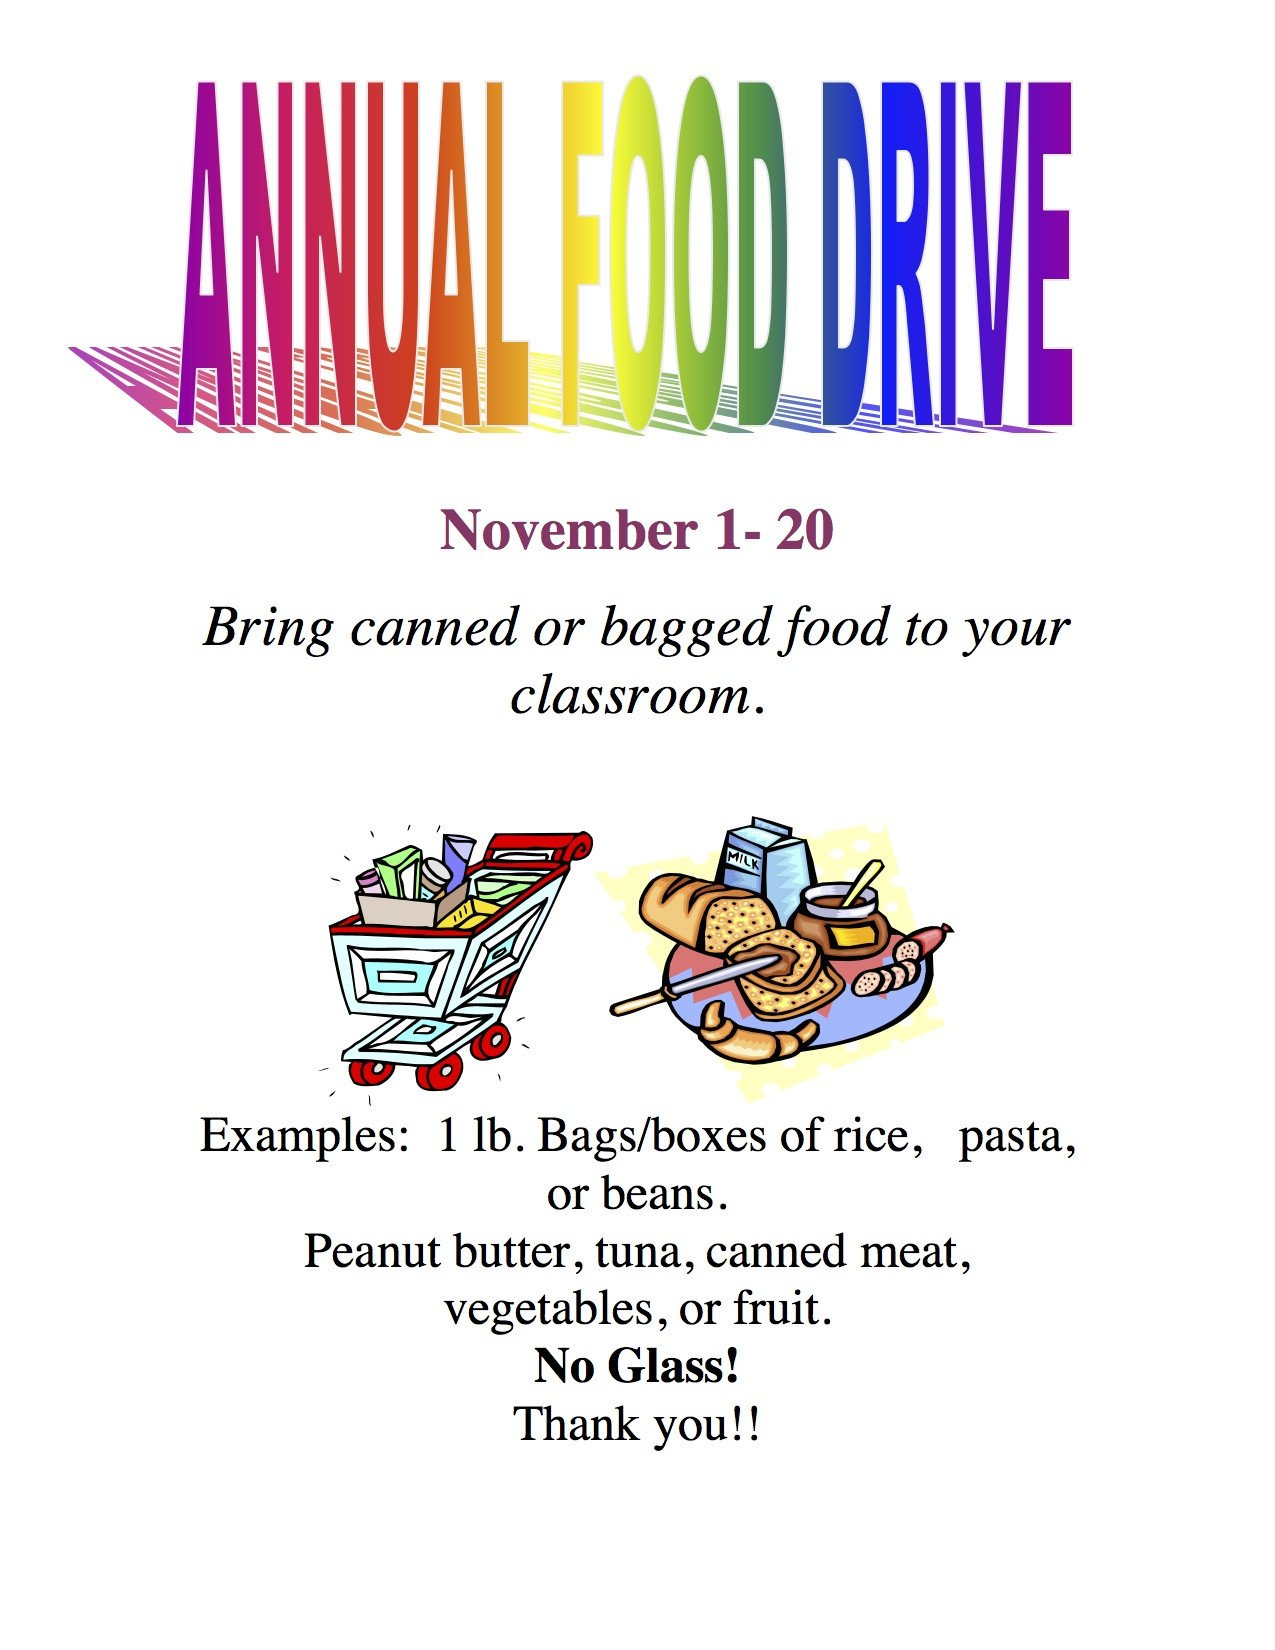 Canned Food Drive Flyer Template Current events… Camarena Elementary